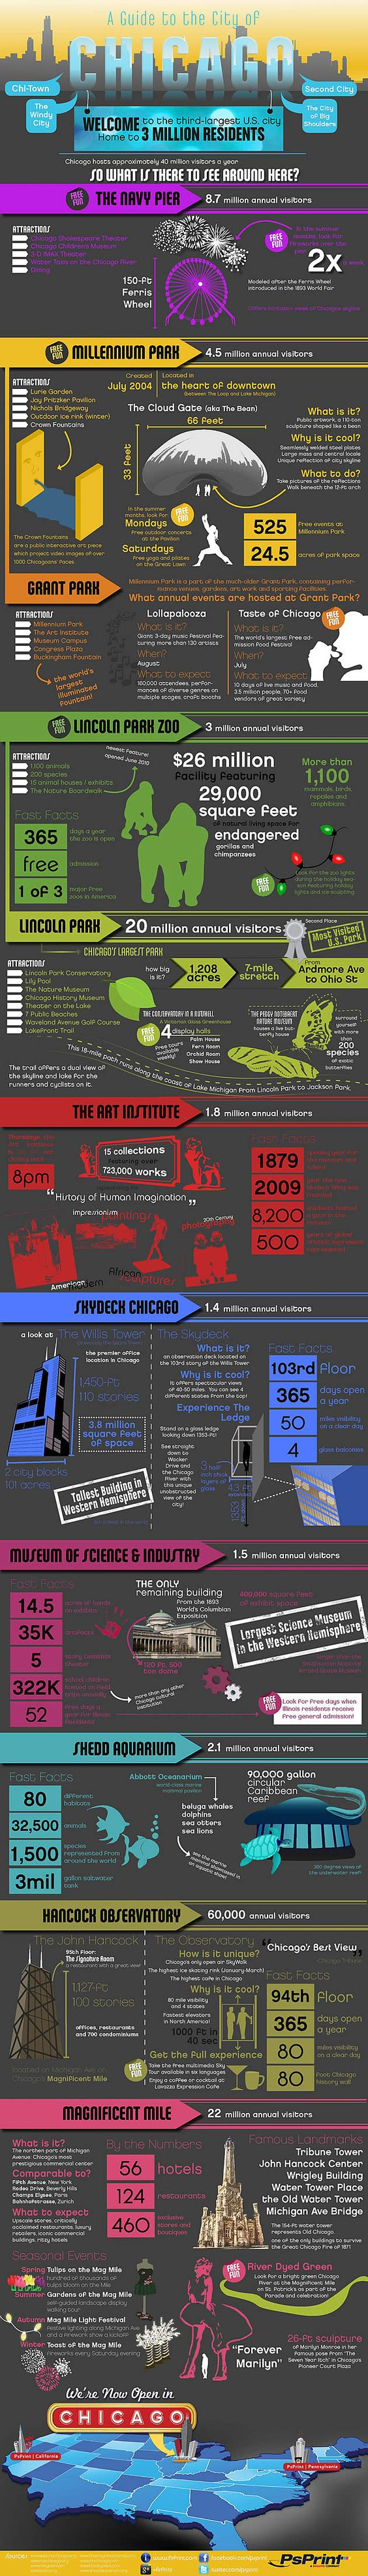 Guide for the city of Chicago: An infographic by the team at PsPrint for Chicago